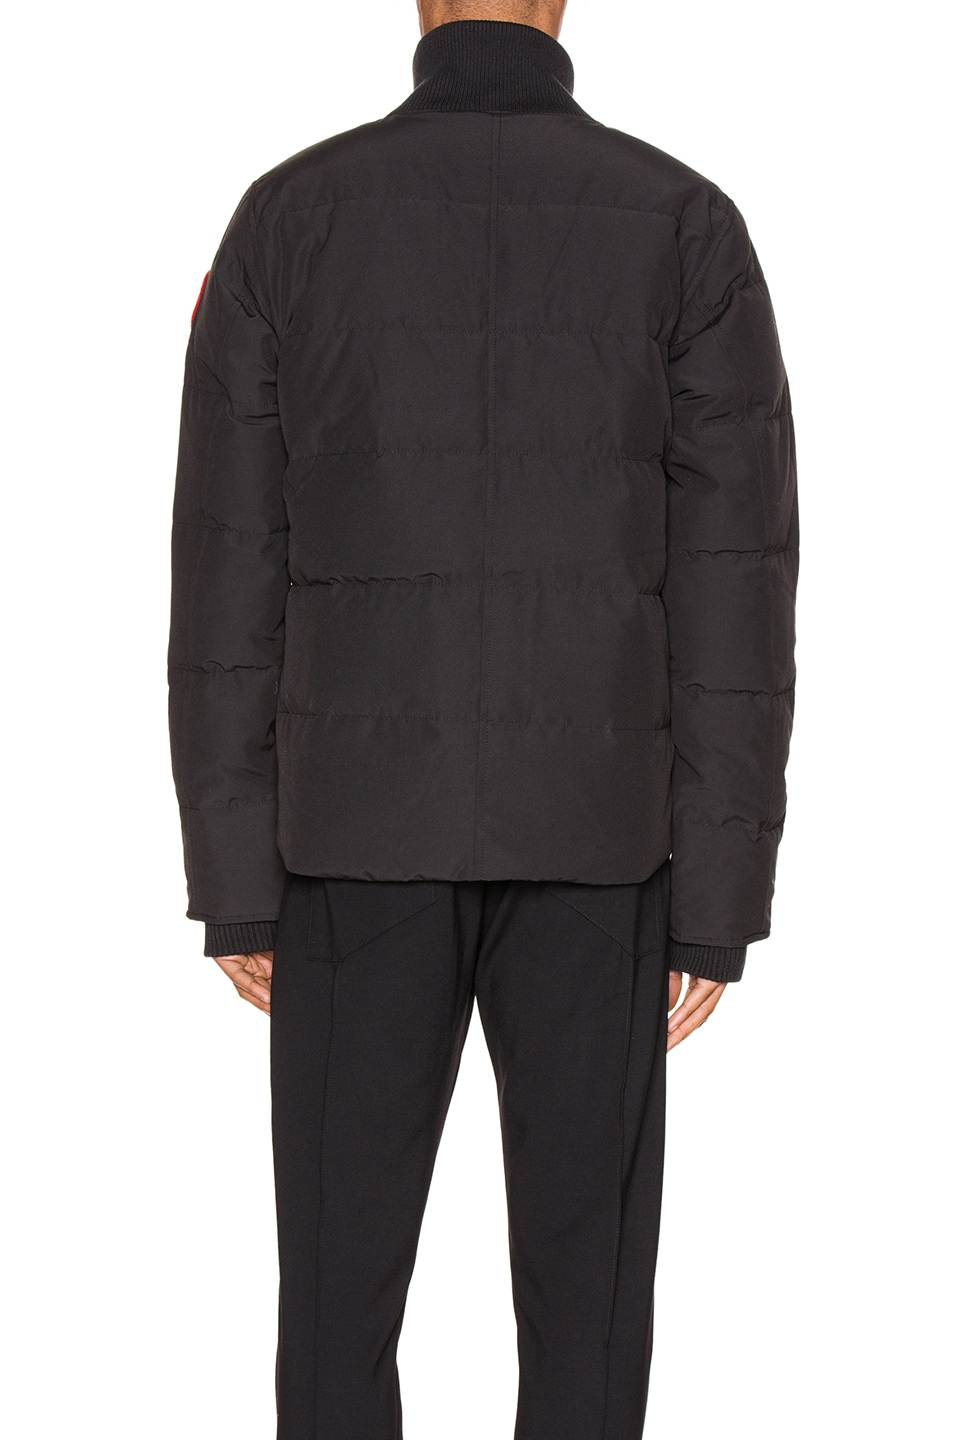 Image 5 of Canada Goose Woolford Jacket in Black